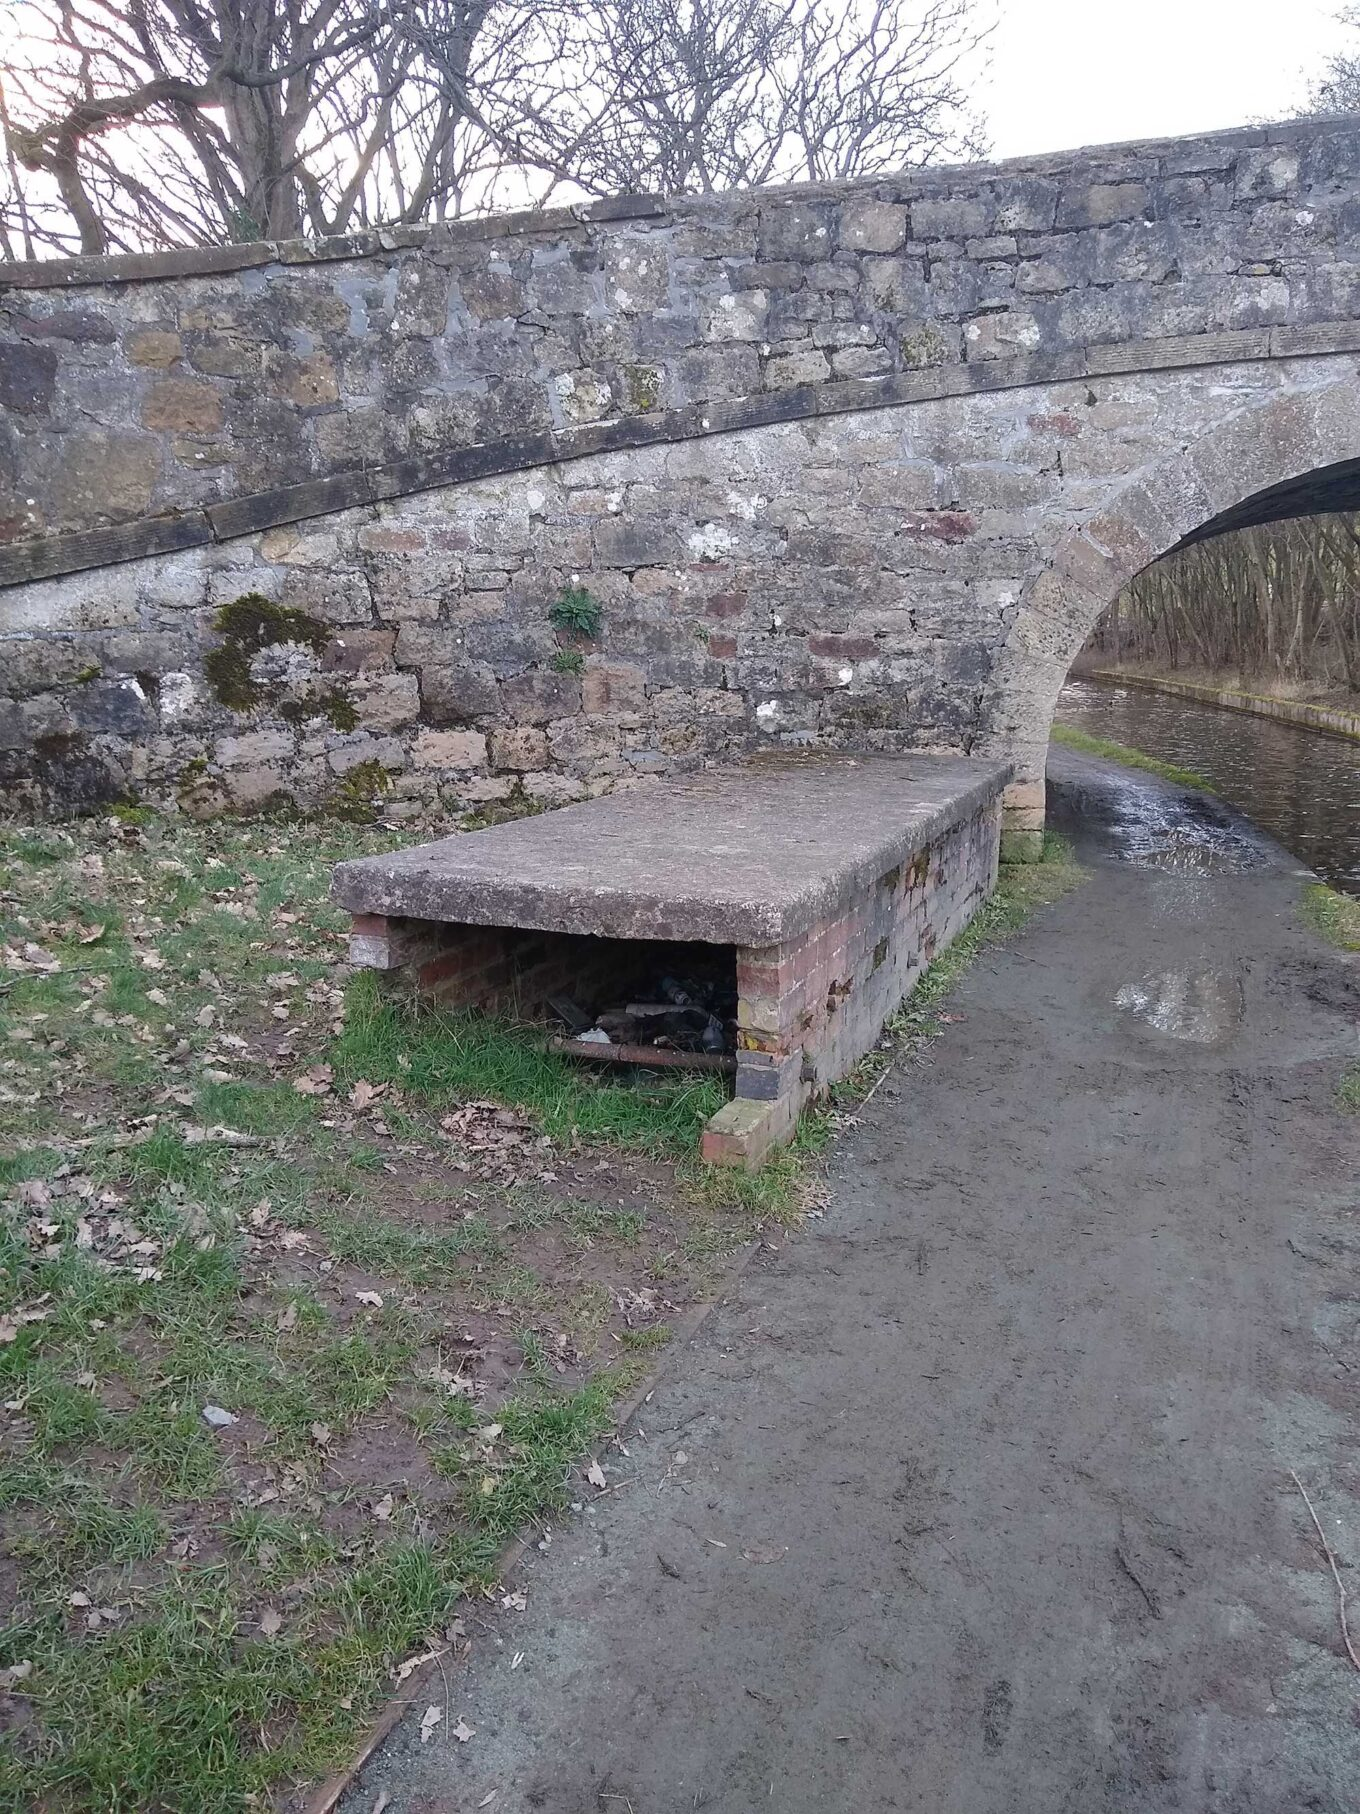 At Plas Isaf Bridge, the stop plank shelter is a low-level structure of brick and concrete.